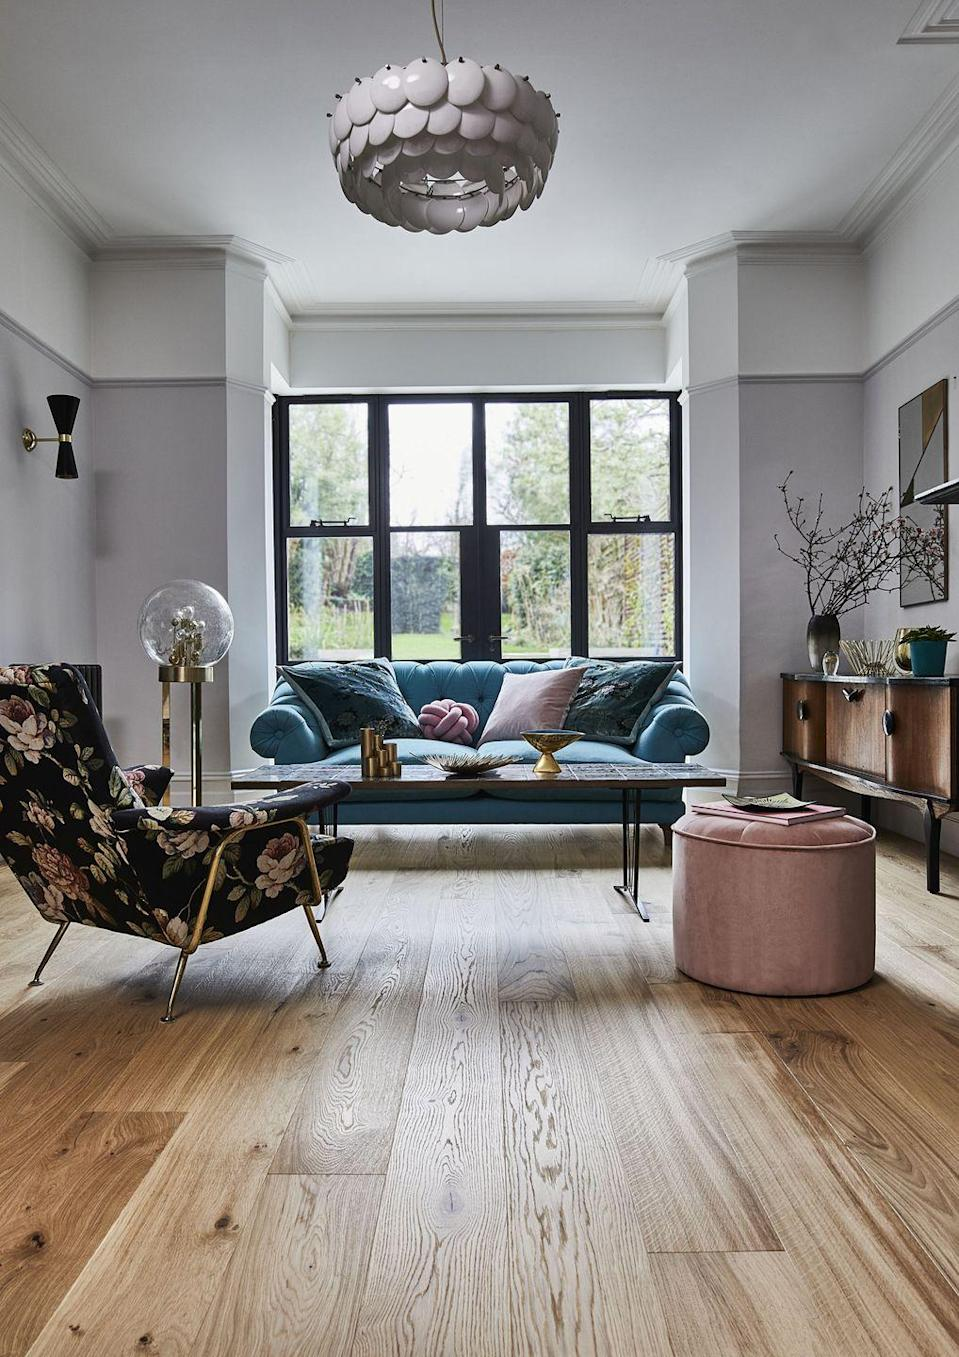 """<p>There's nothing more irritating than a creaky floorboard — especially when you're trying to tiptoe around at night without waking other household members. </p><p>According to Barrows and Forrester, fixing this takes just 30 minutes. 'Just take some talcum powder, soapstone powder or powdered graphite and sprinkle it between the cracks of the offending board or boards and this should do the trick,' they explain. </p><p>Pictured: <a href=""""https://www.carpetright.co.uk/engineered-wood/coniston-buttermere-oak-herringbone-wood-flooring/"""" rel=""""nofollow noopener"""" target=""""_blank"""" data-ylk=""""slk:Coniston Buttermere Oak Herringbone Wood Flooring from the House Beautiful collection at Carpetright"""" class=""""link rapid-noclick-resp"""">Coniston Buttermere Oak Herringbone Wood Flooring from the House Beautiful collection at Carpetright</a></p>"""